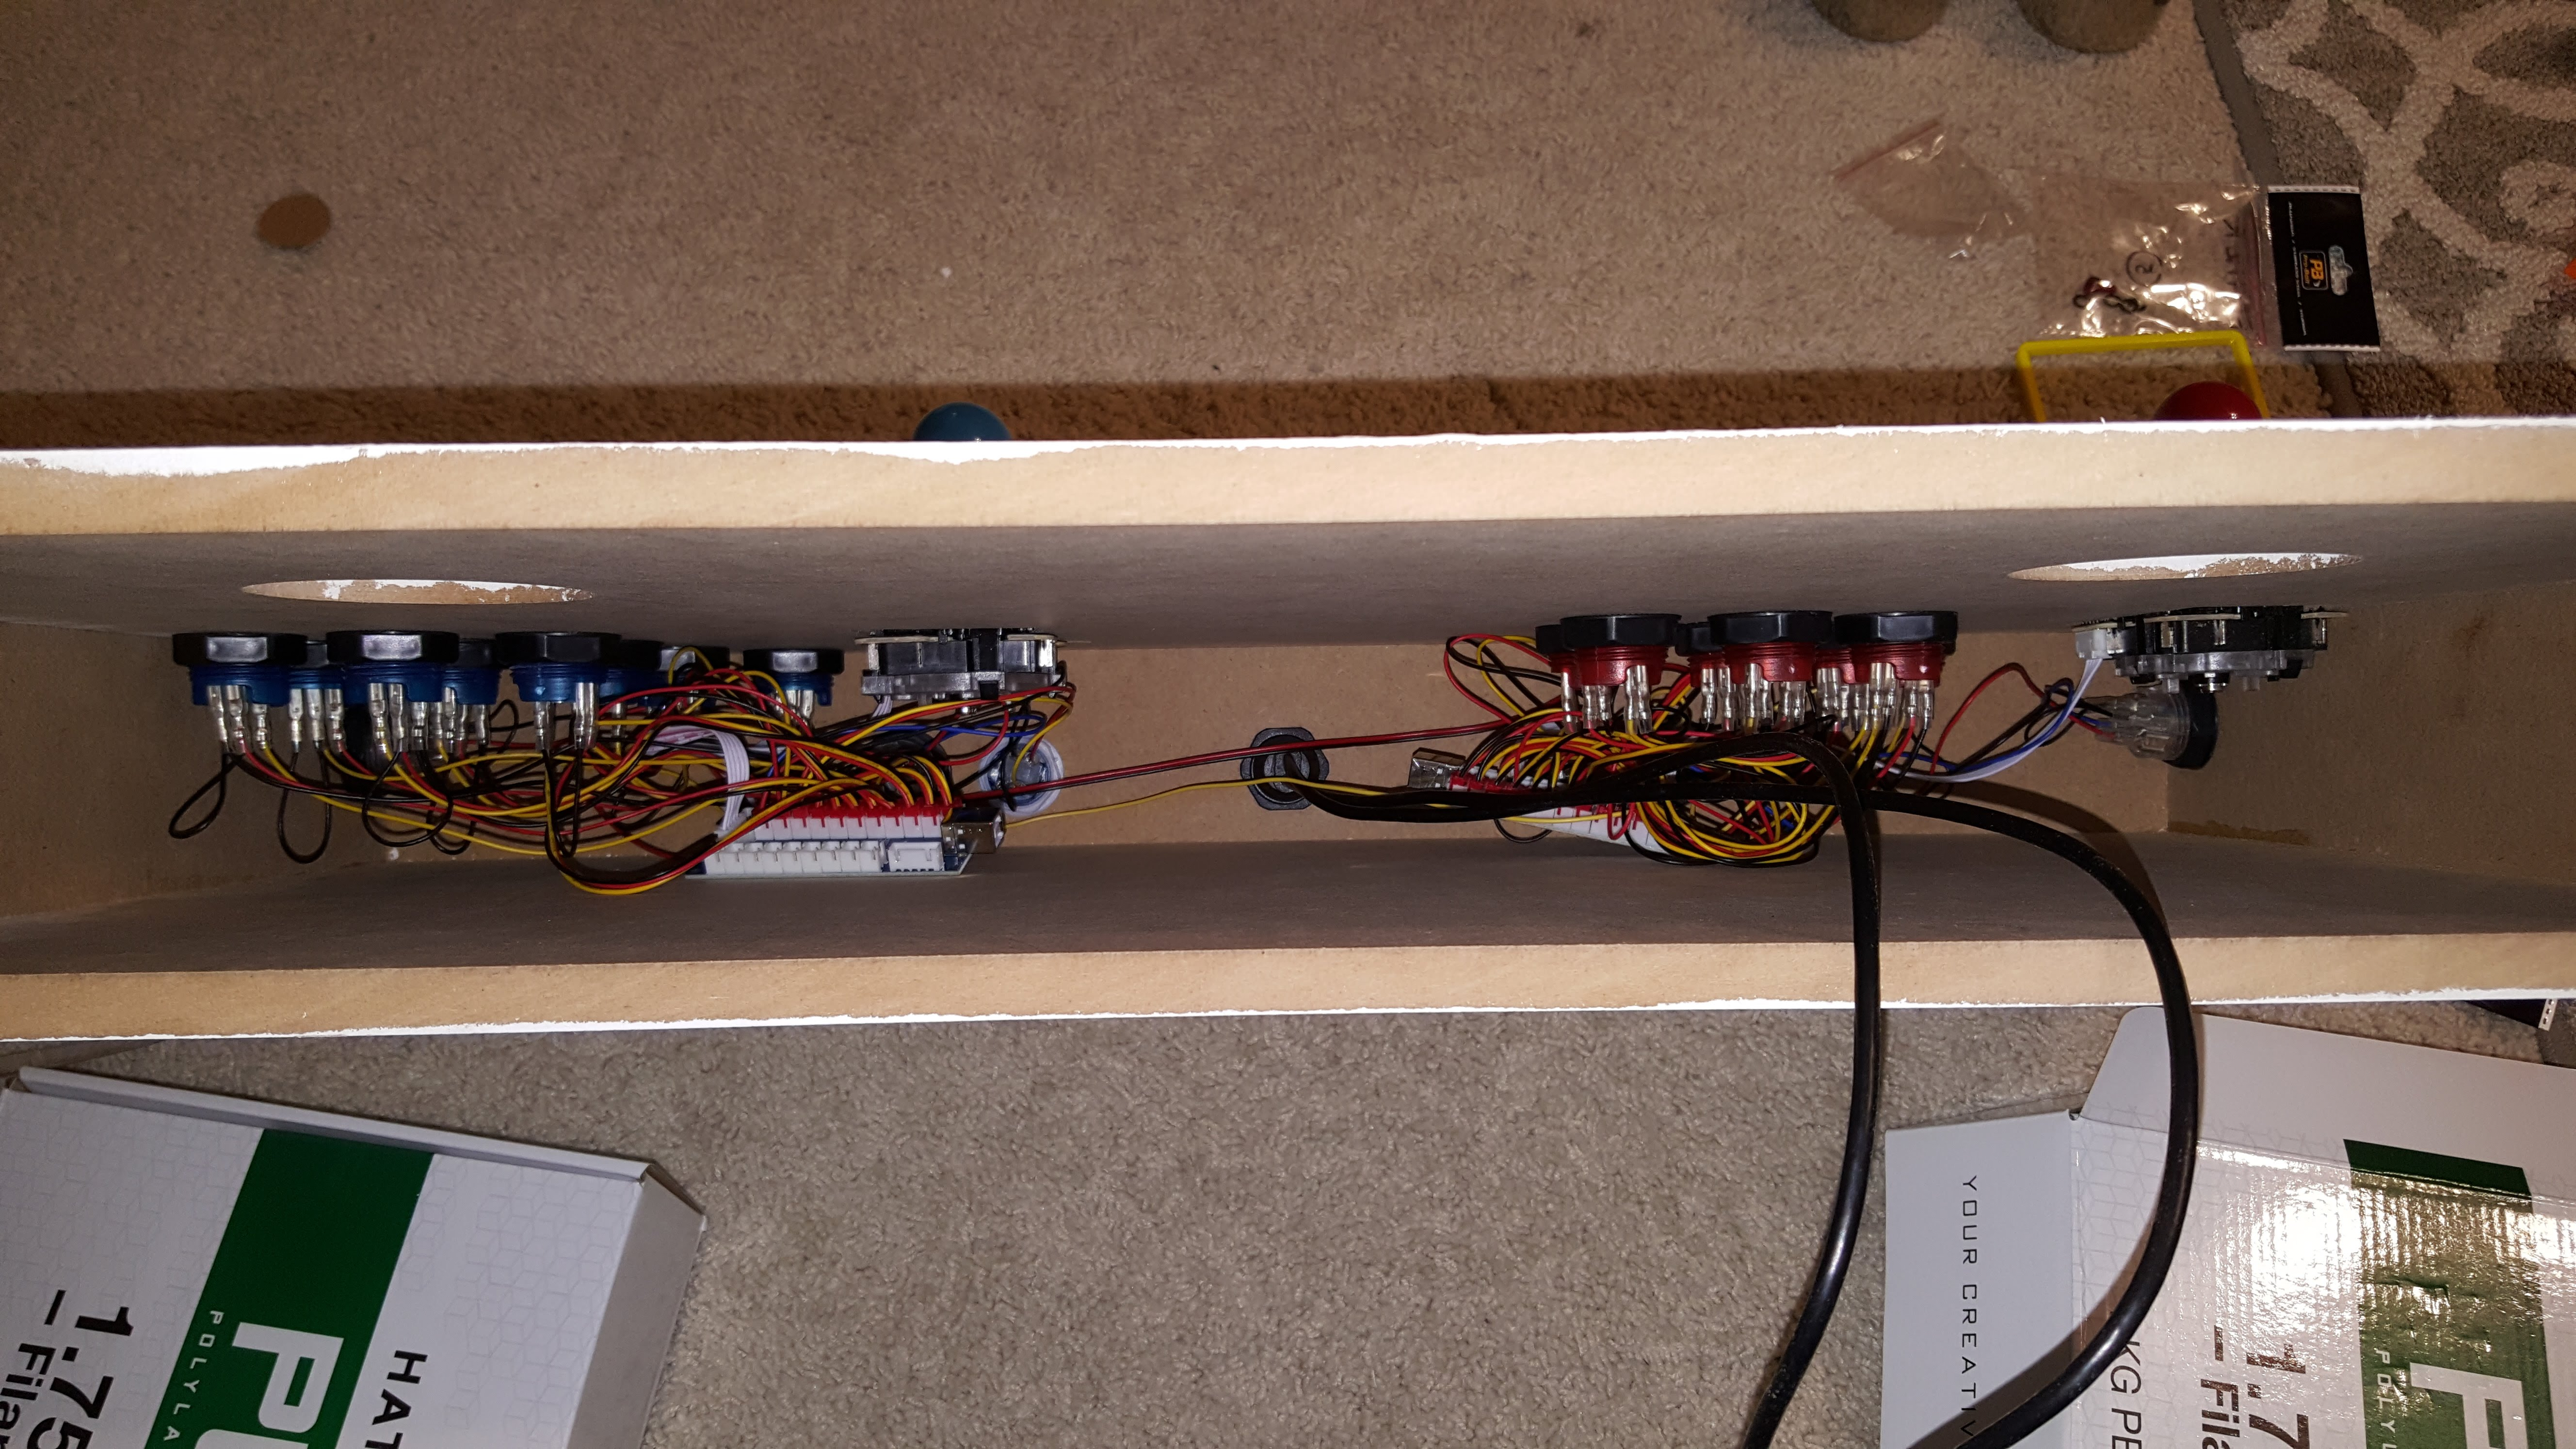 Picture of Installing and Wiring Up the Arcade Controls